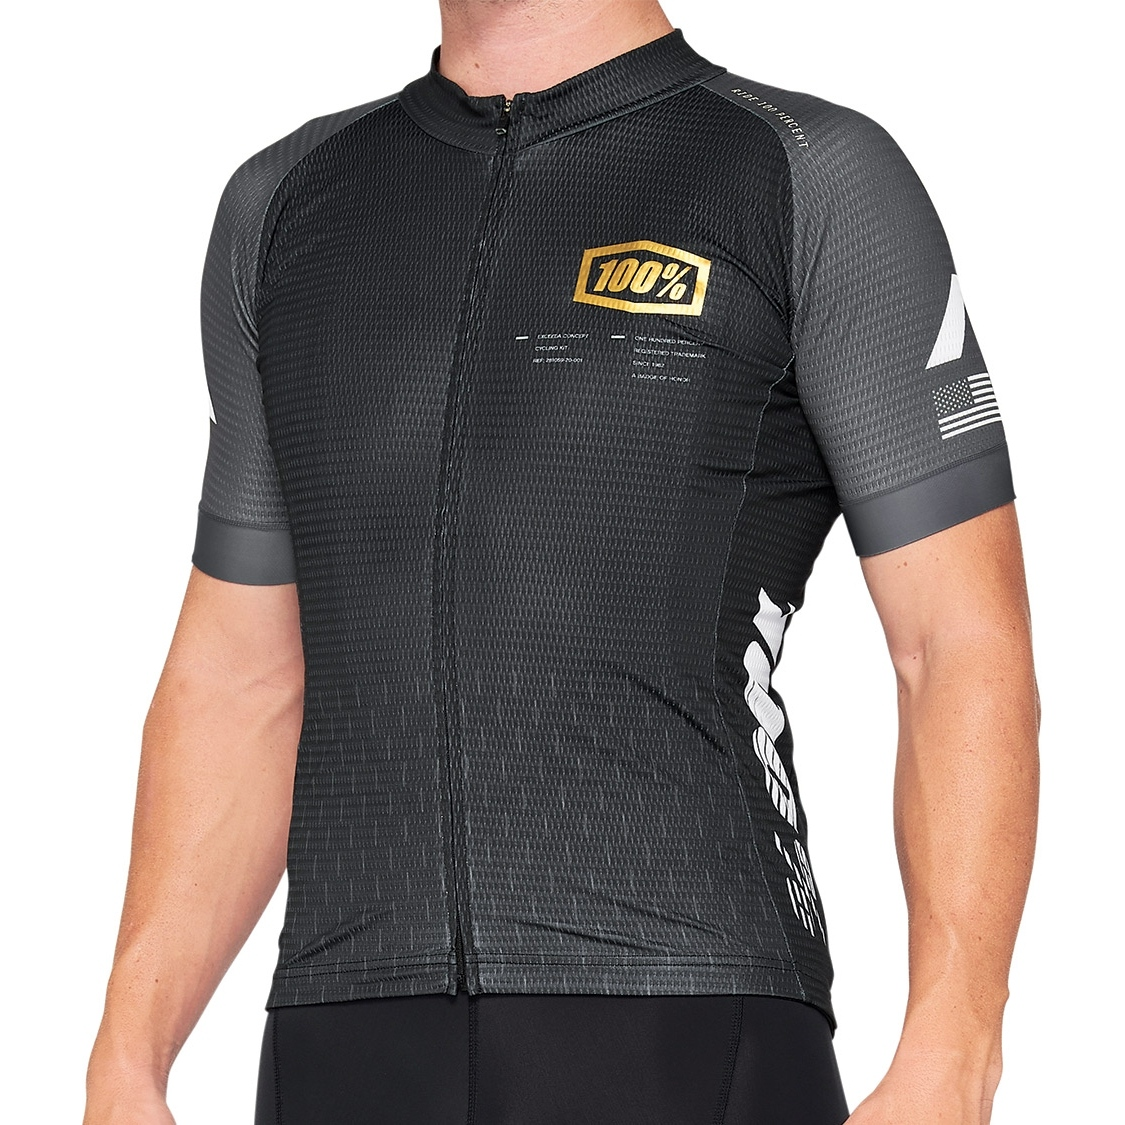 100% Exceeda Maillot - black/charcoal